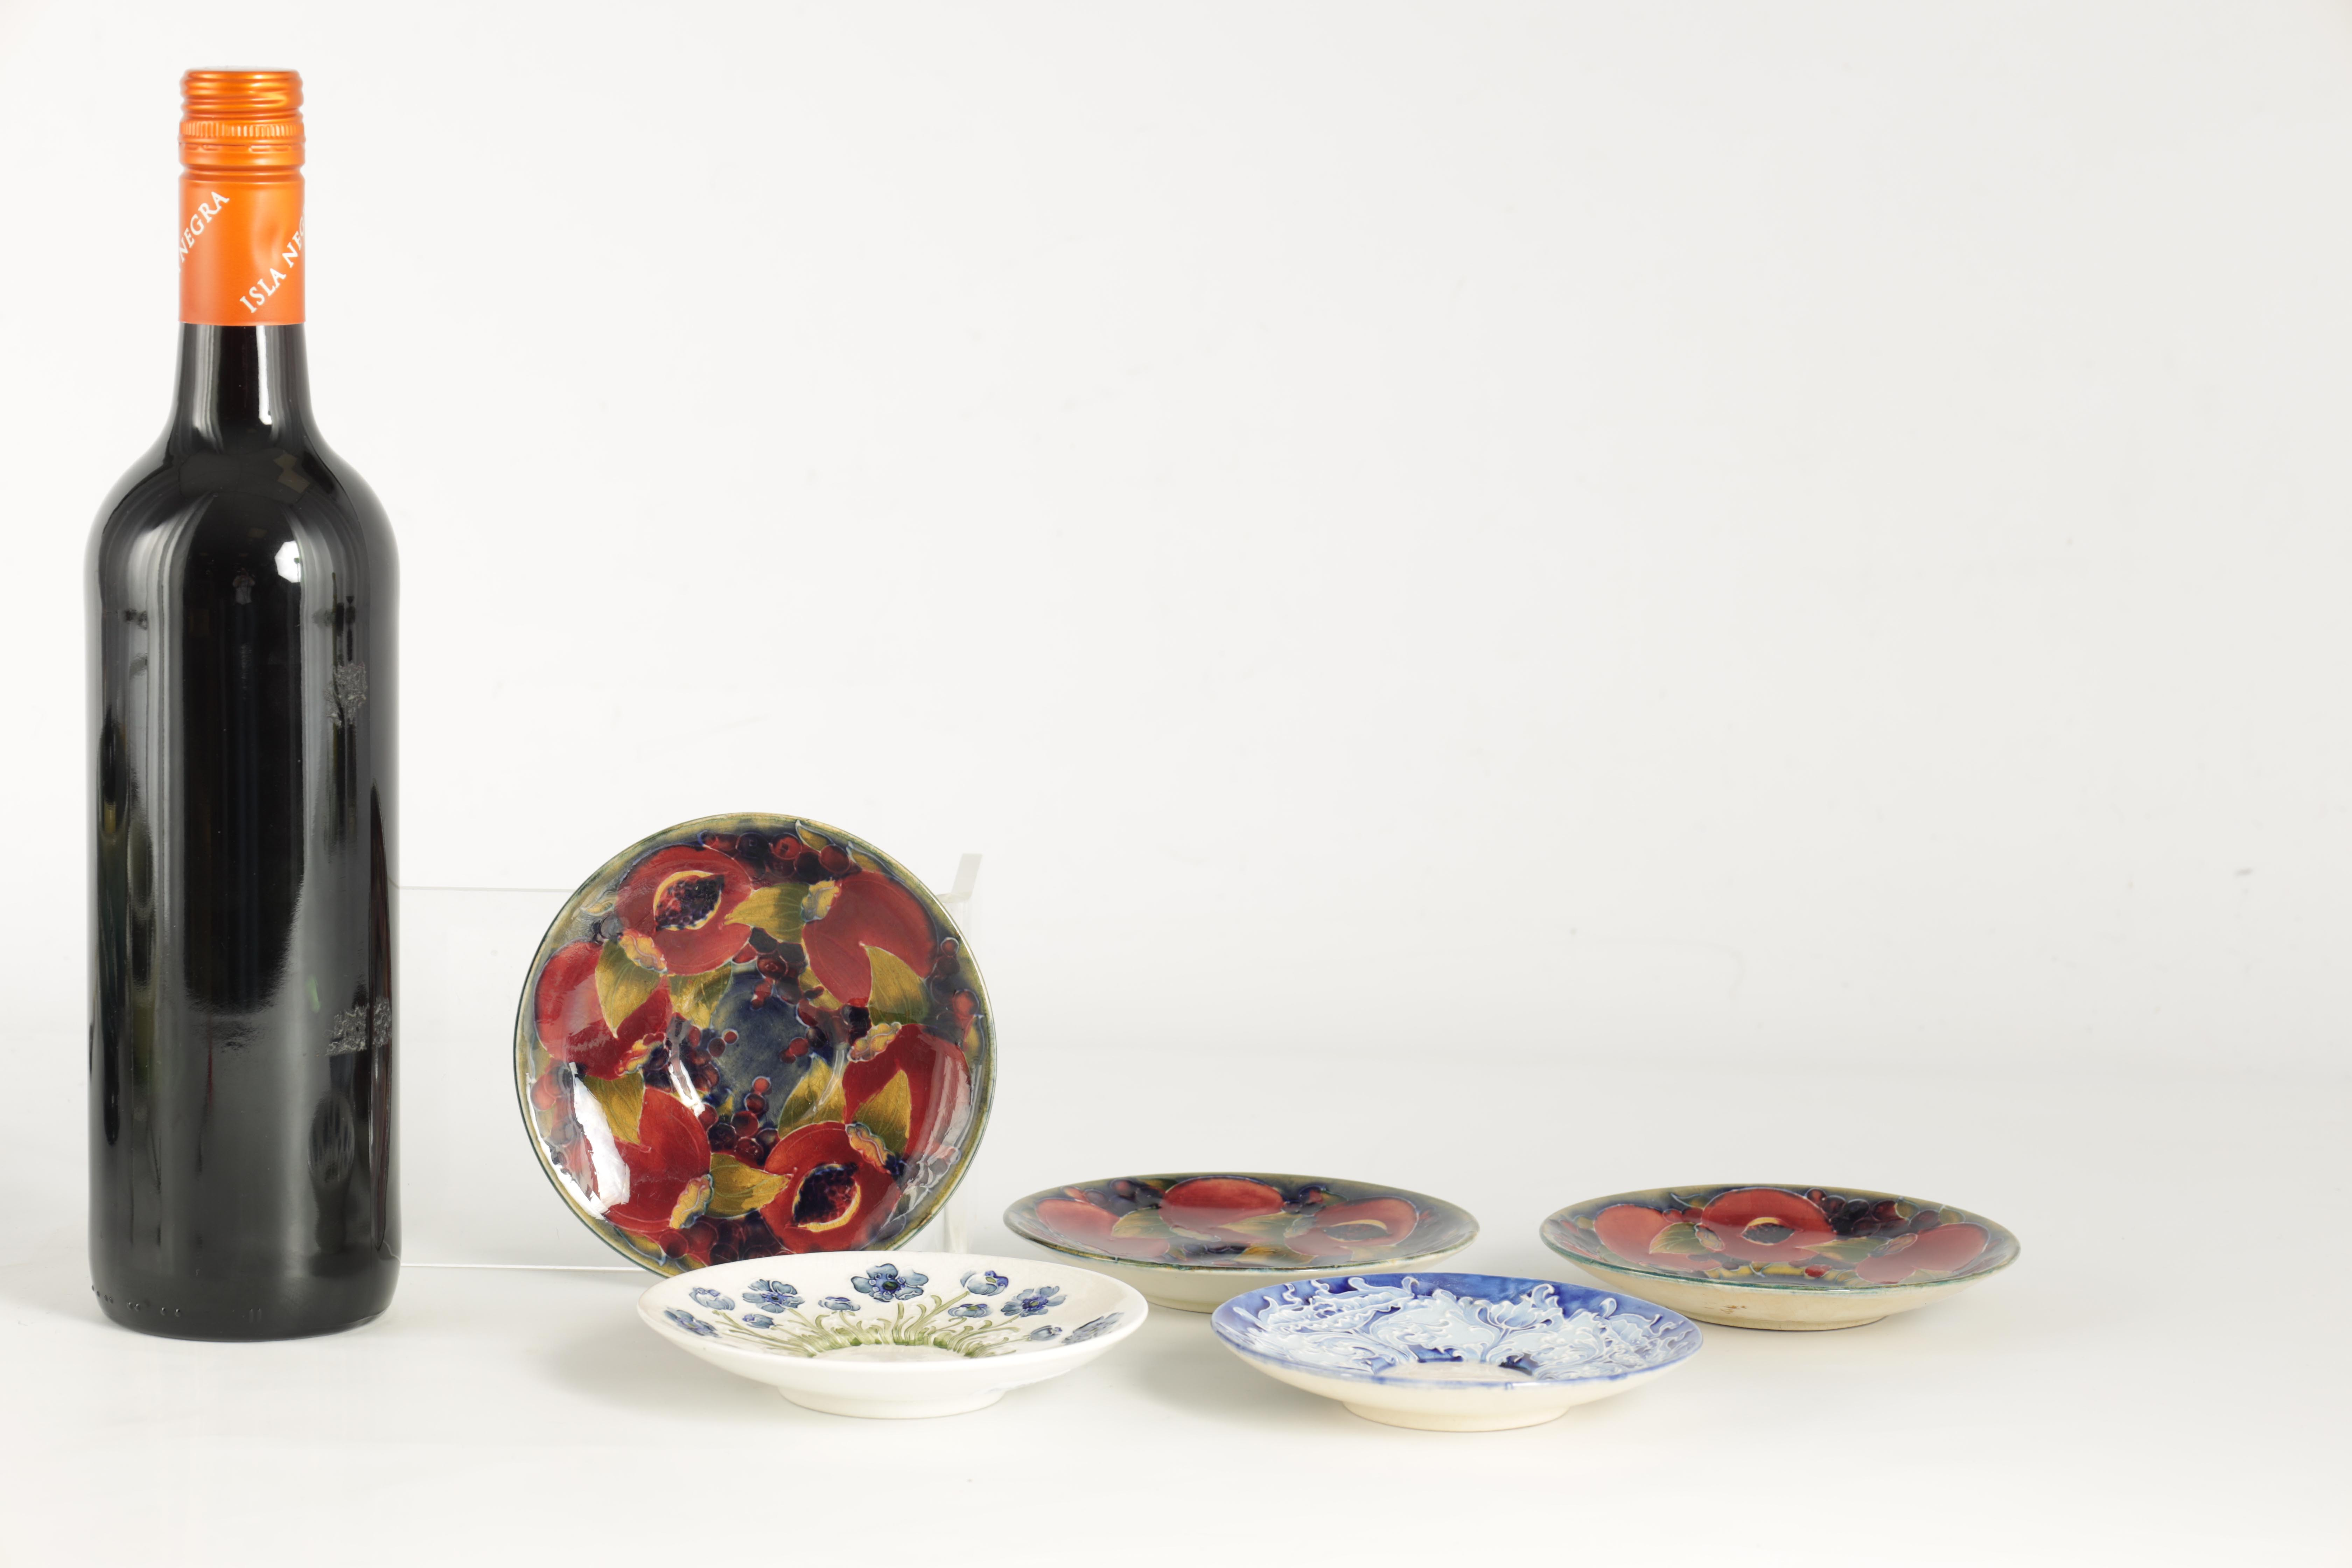 A COLLECTION OF FIVE MOORCROFT SAUCERS including three early monogrammed Pomegranate examples, a - Image 2 of 3